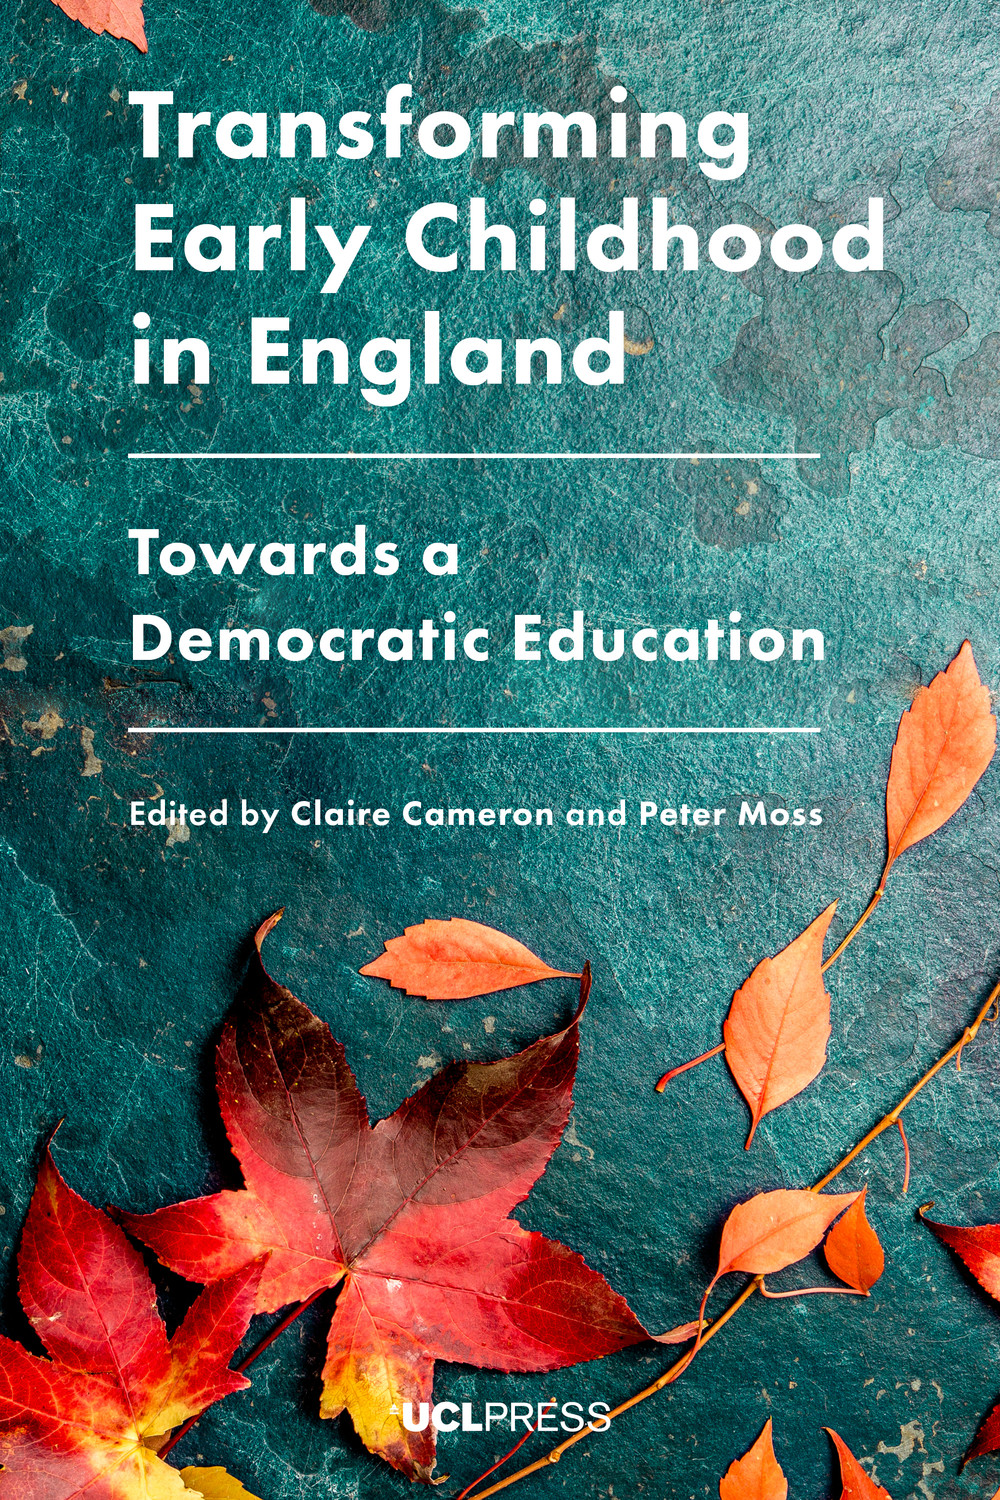 Transforming Early Childhood in England